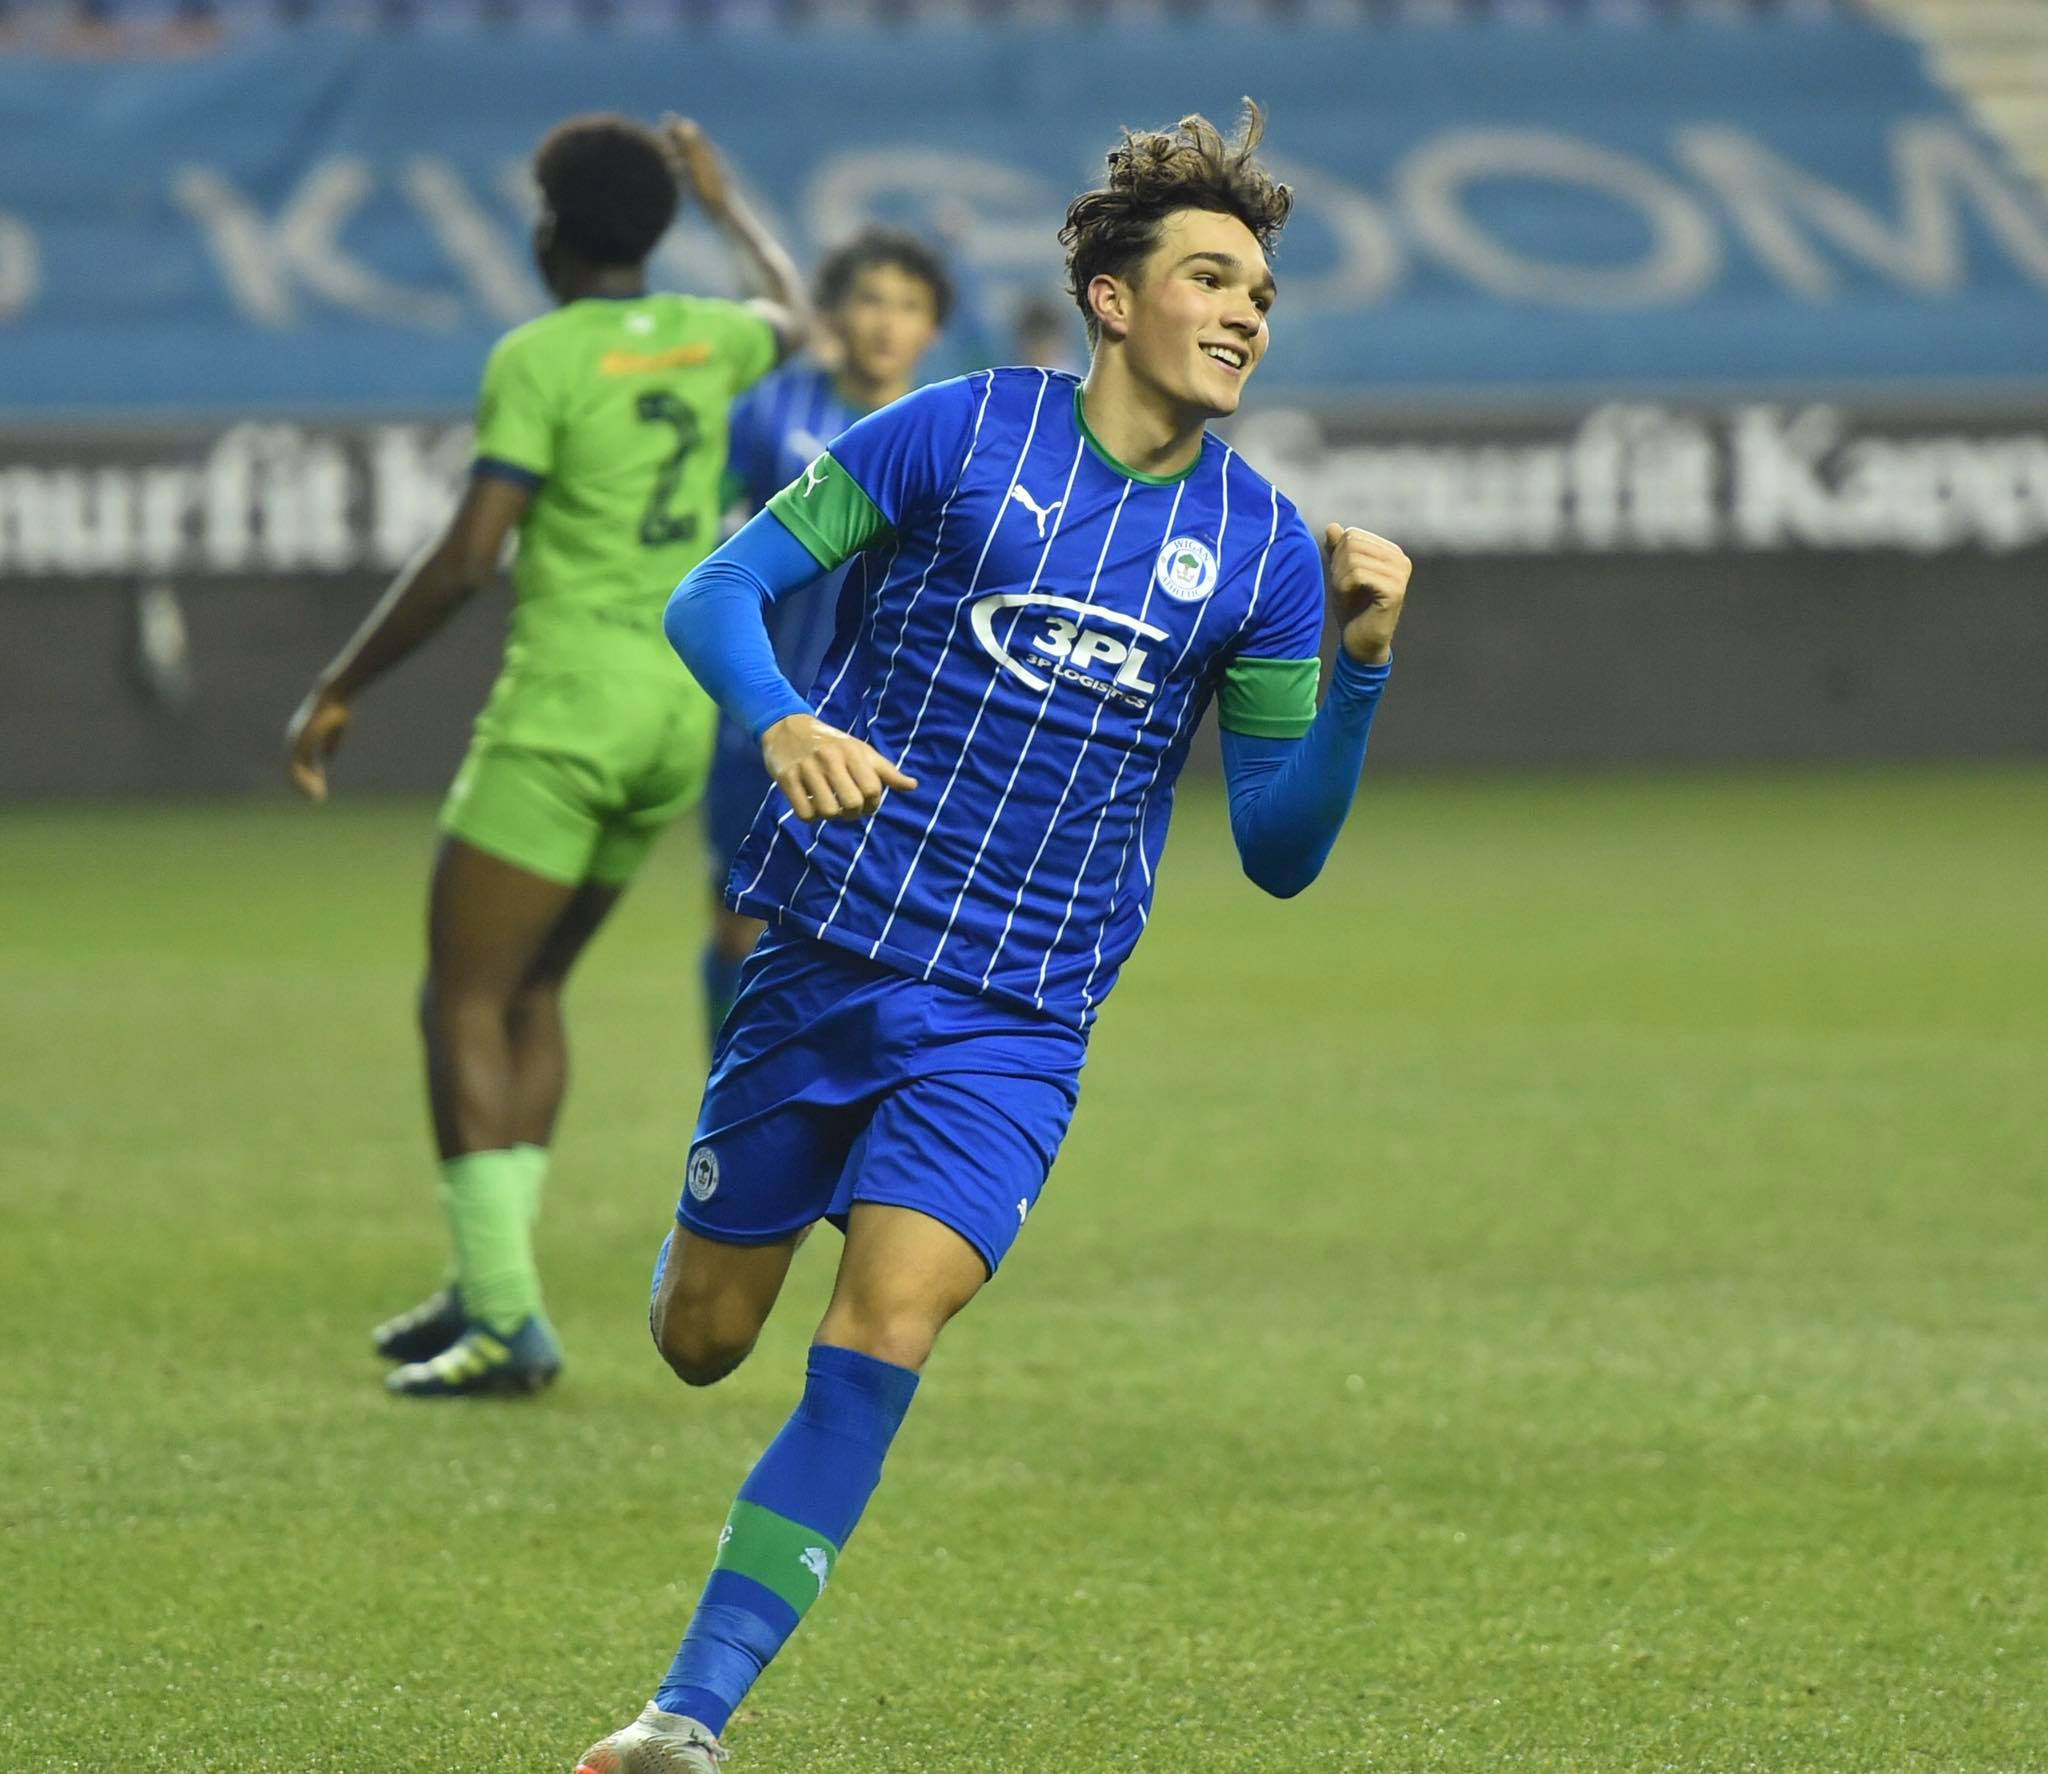 Kyle Joseph has been linked with a move to Tottenham Hotspur. (Image Credits: Wigan Athletic website/Facebook)